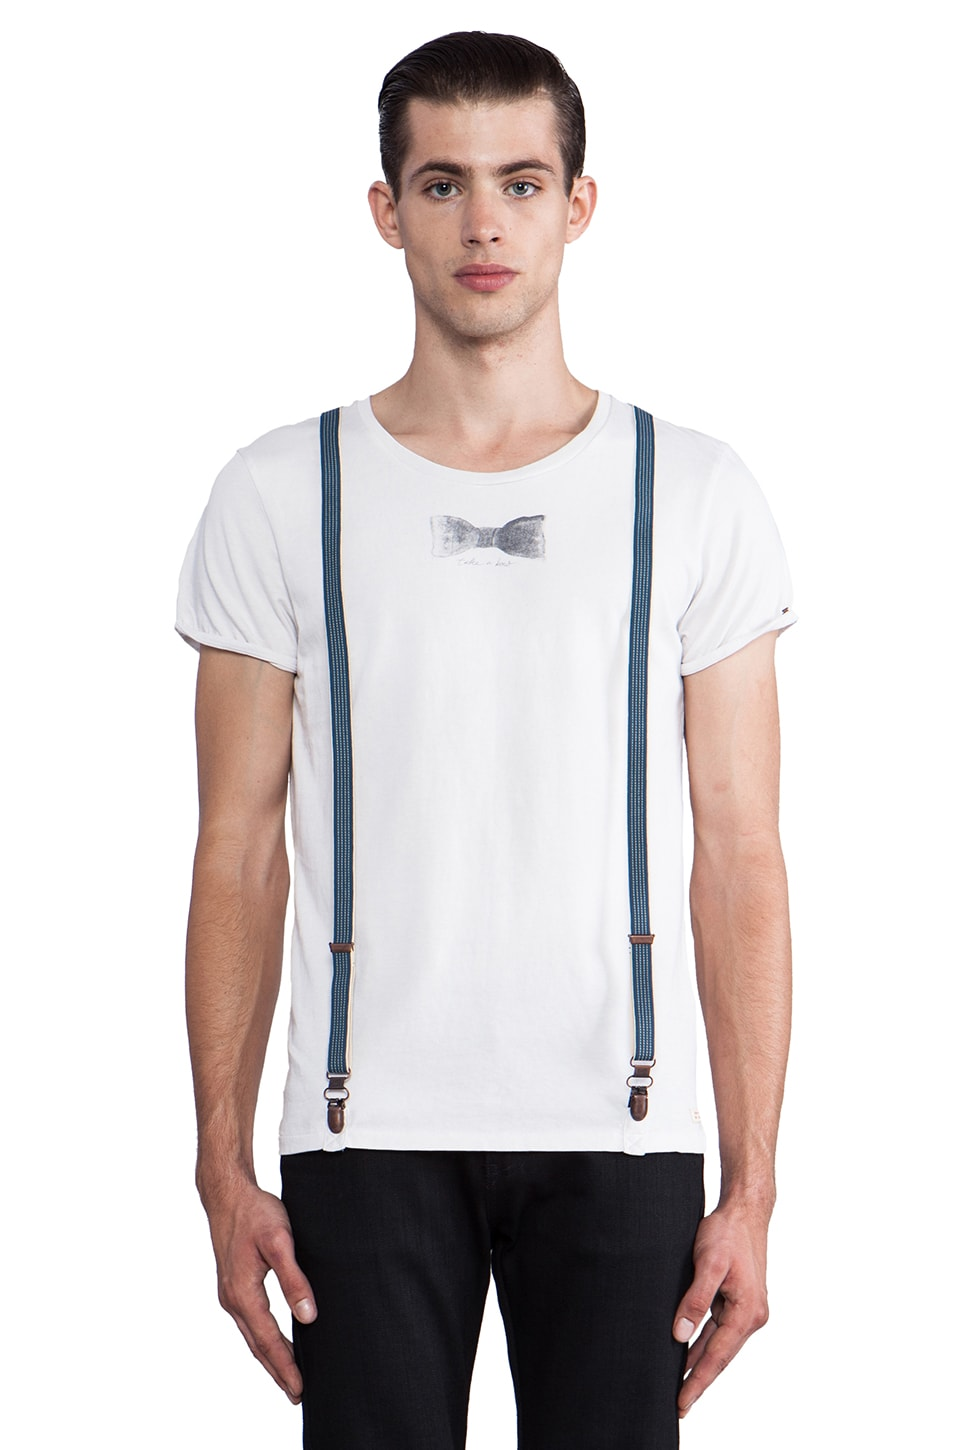 Scotch & Soda Stripes & Solids Tee in White